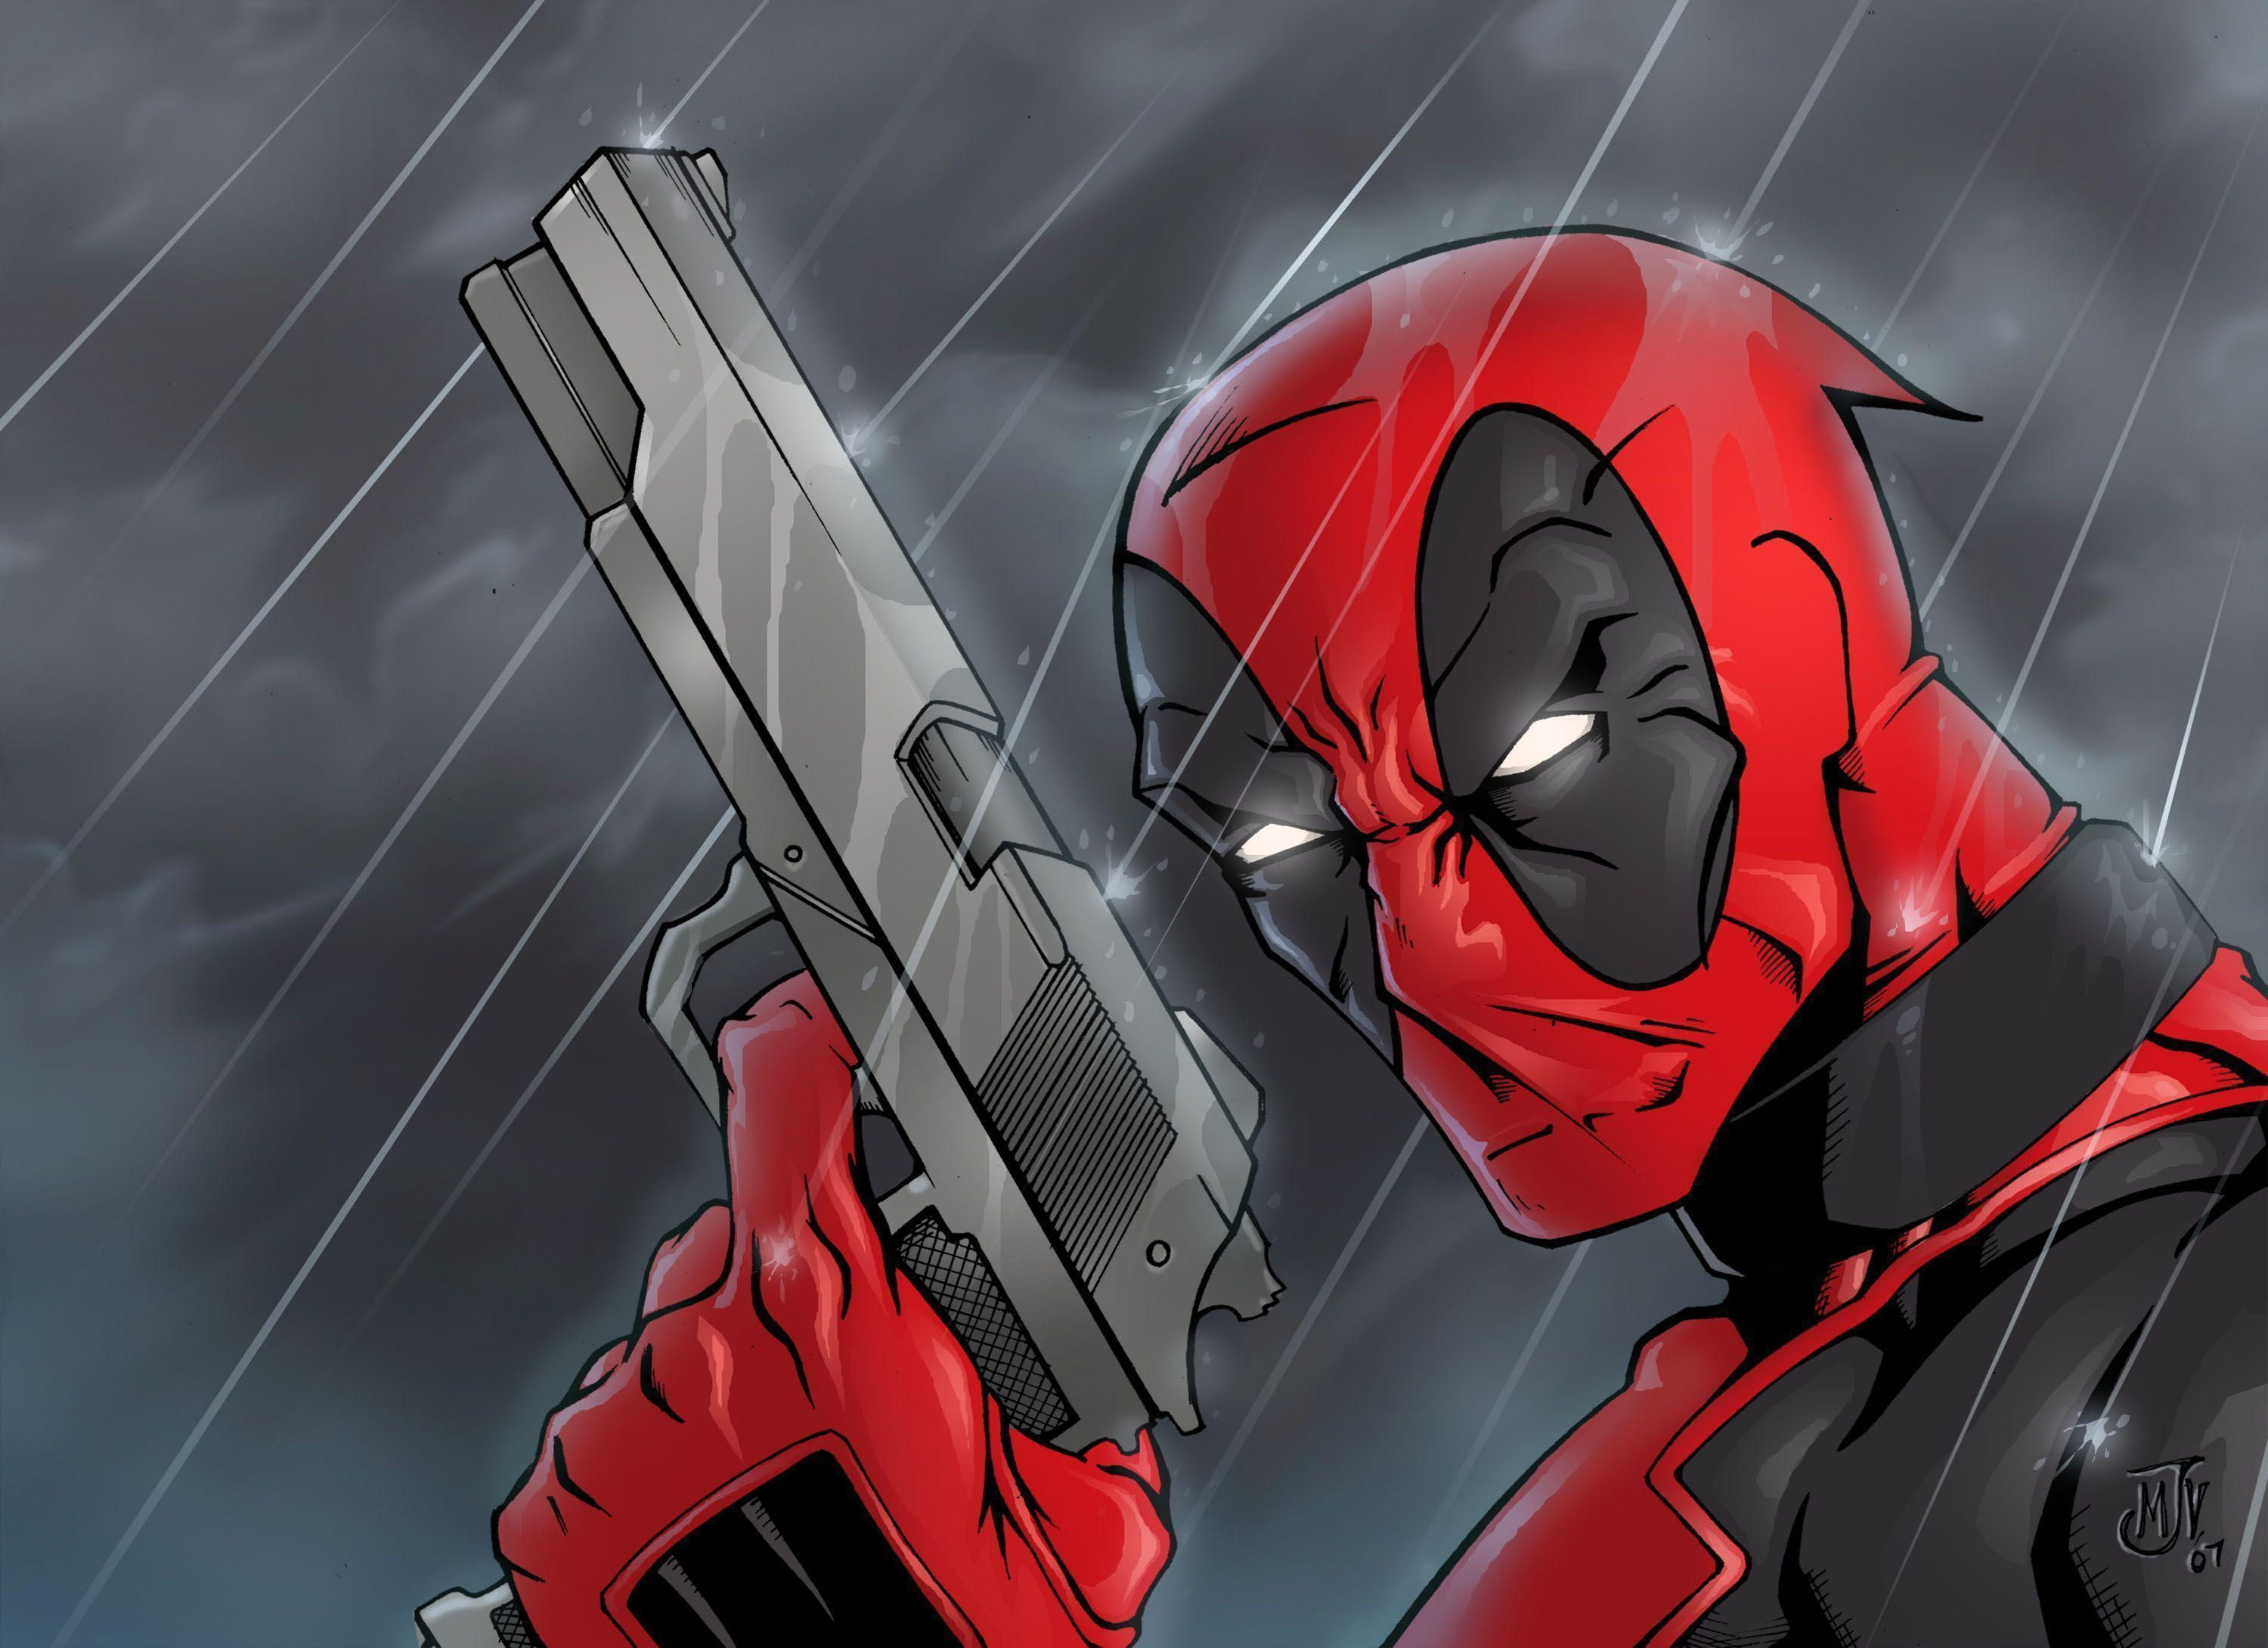 956 deadpool wallpapers movies - photo #17